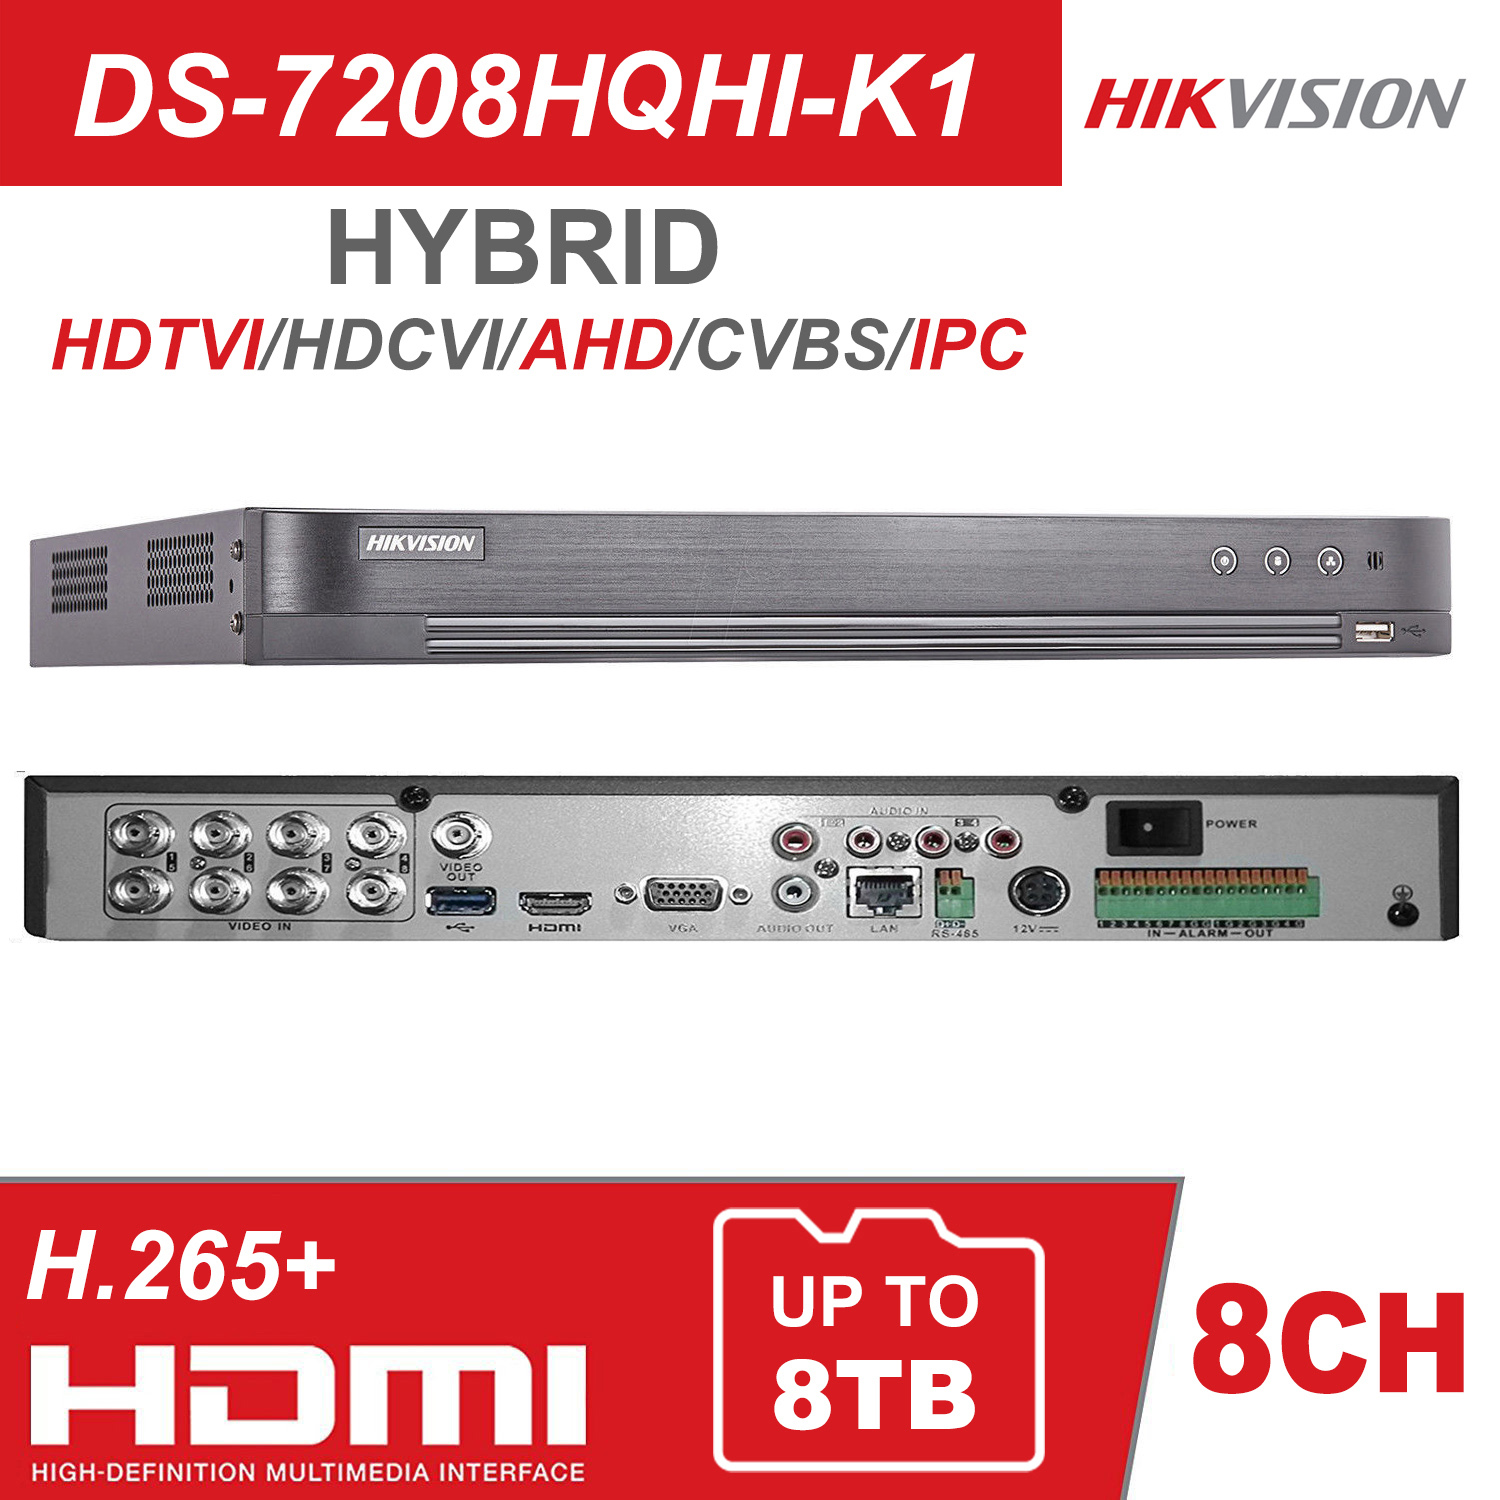 <font><b>Hikvision</b></font> Hybrid 4/8/<font><b>16CH</b></font> <font><b>DVR</b></font> DS-7204/08/16HQHI-K1 5 IN 1 (HDTVI/AHD /CVI/CVBS/IP) h.265 Pro + Digital Video Recorder 1HDD unterstützung image